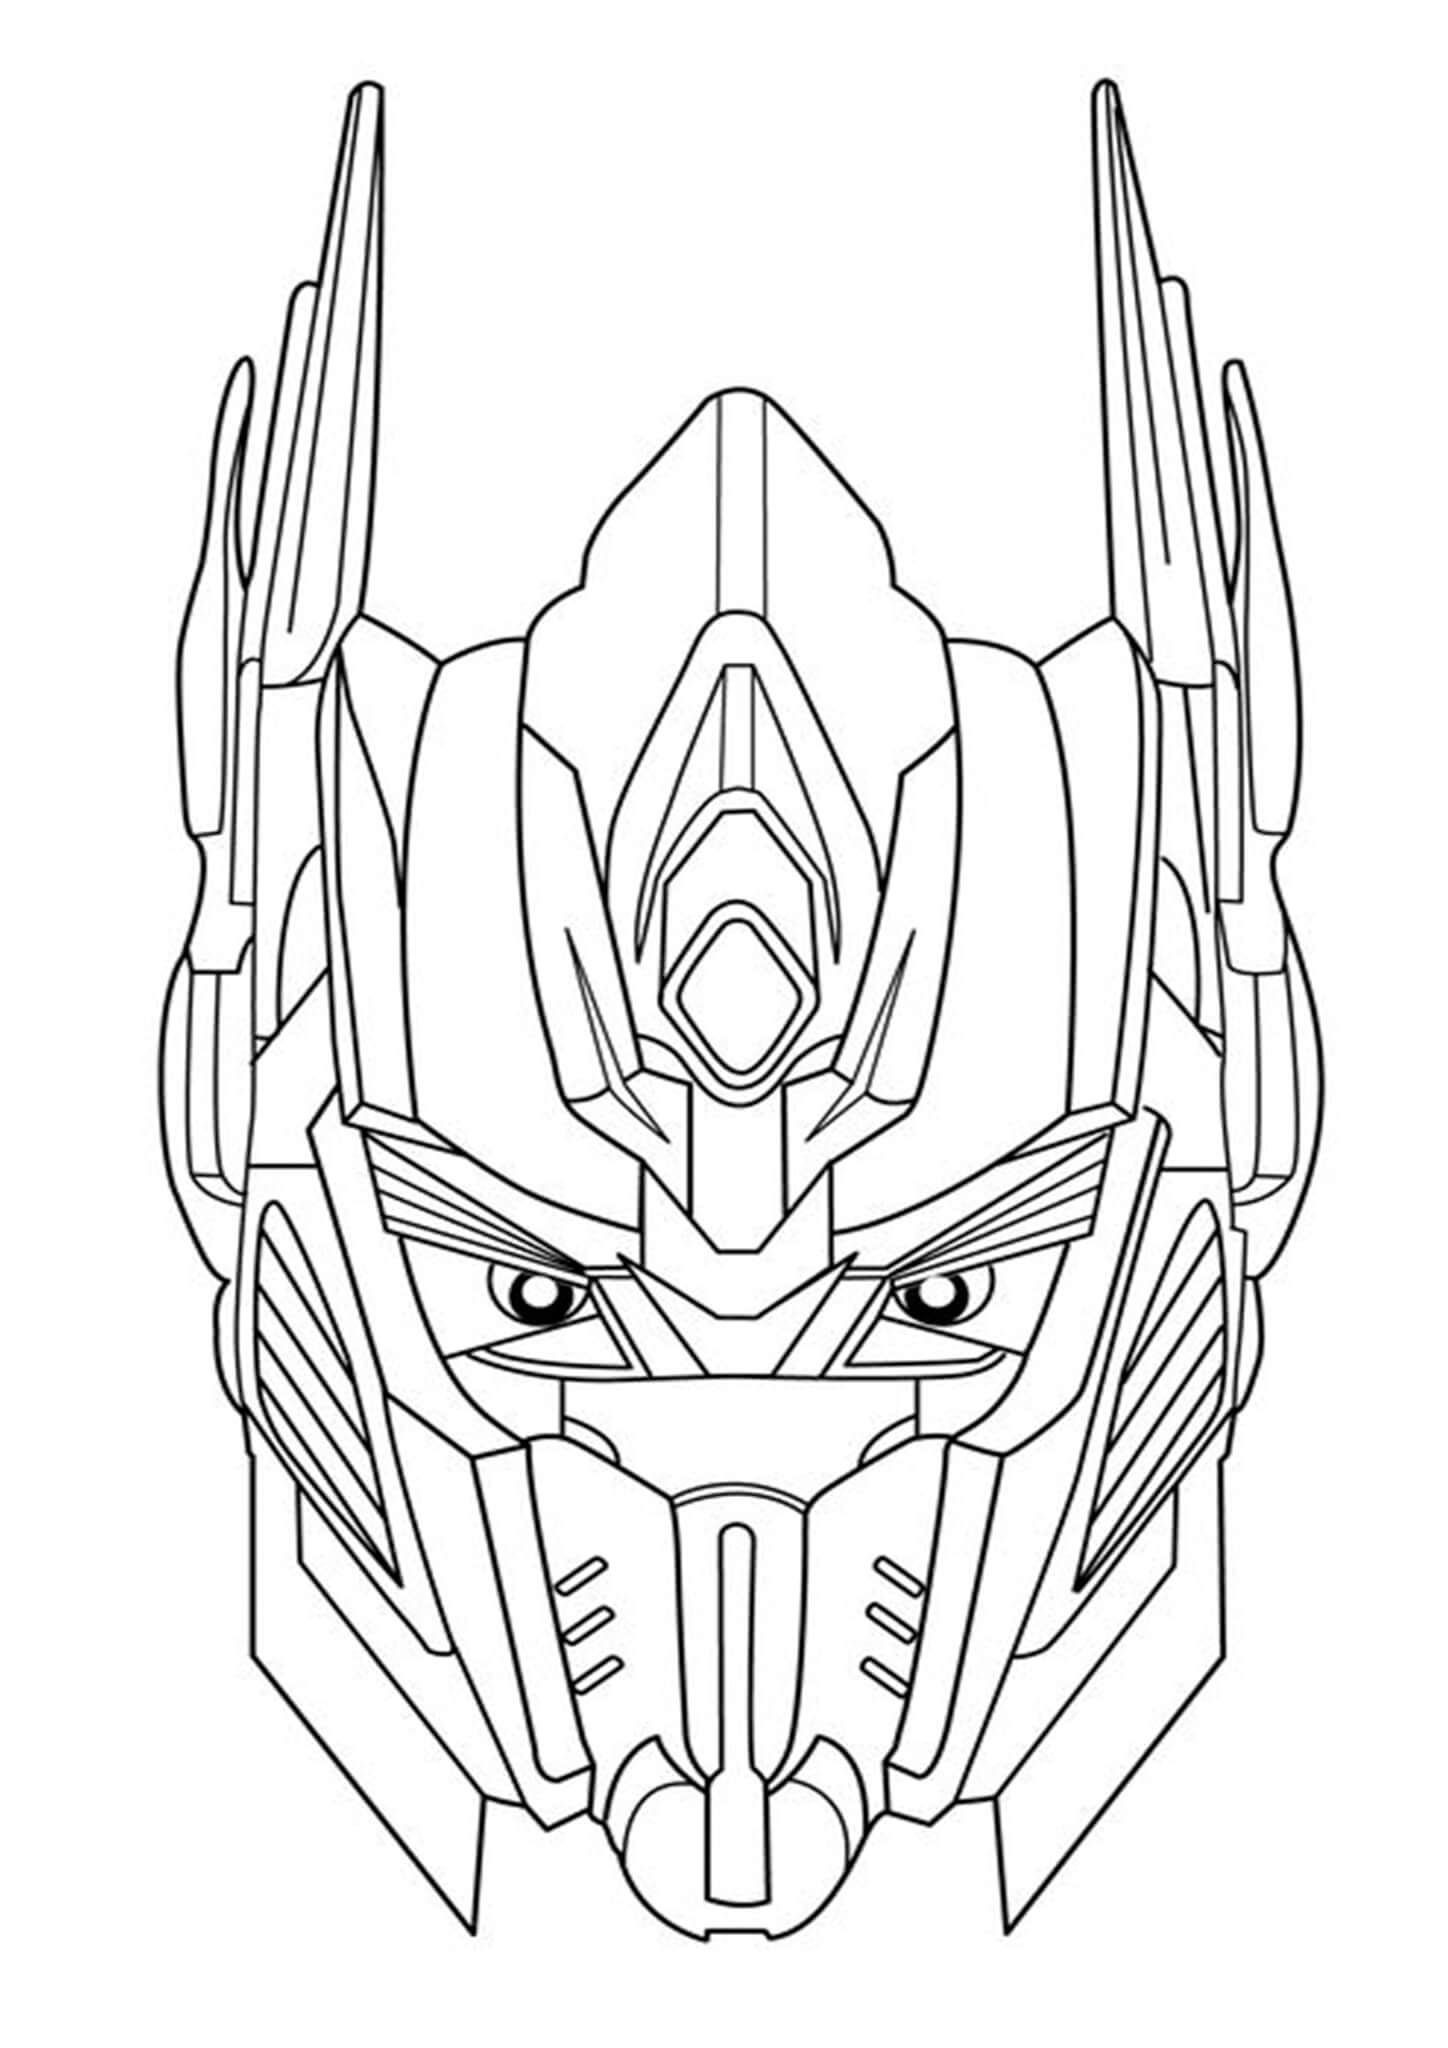 Free Easy To Print Transformers Coloring Pages Transformers Coloring Pages Coloring Pages For Kids Coloring Pages